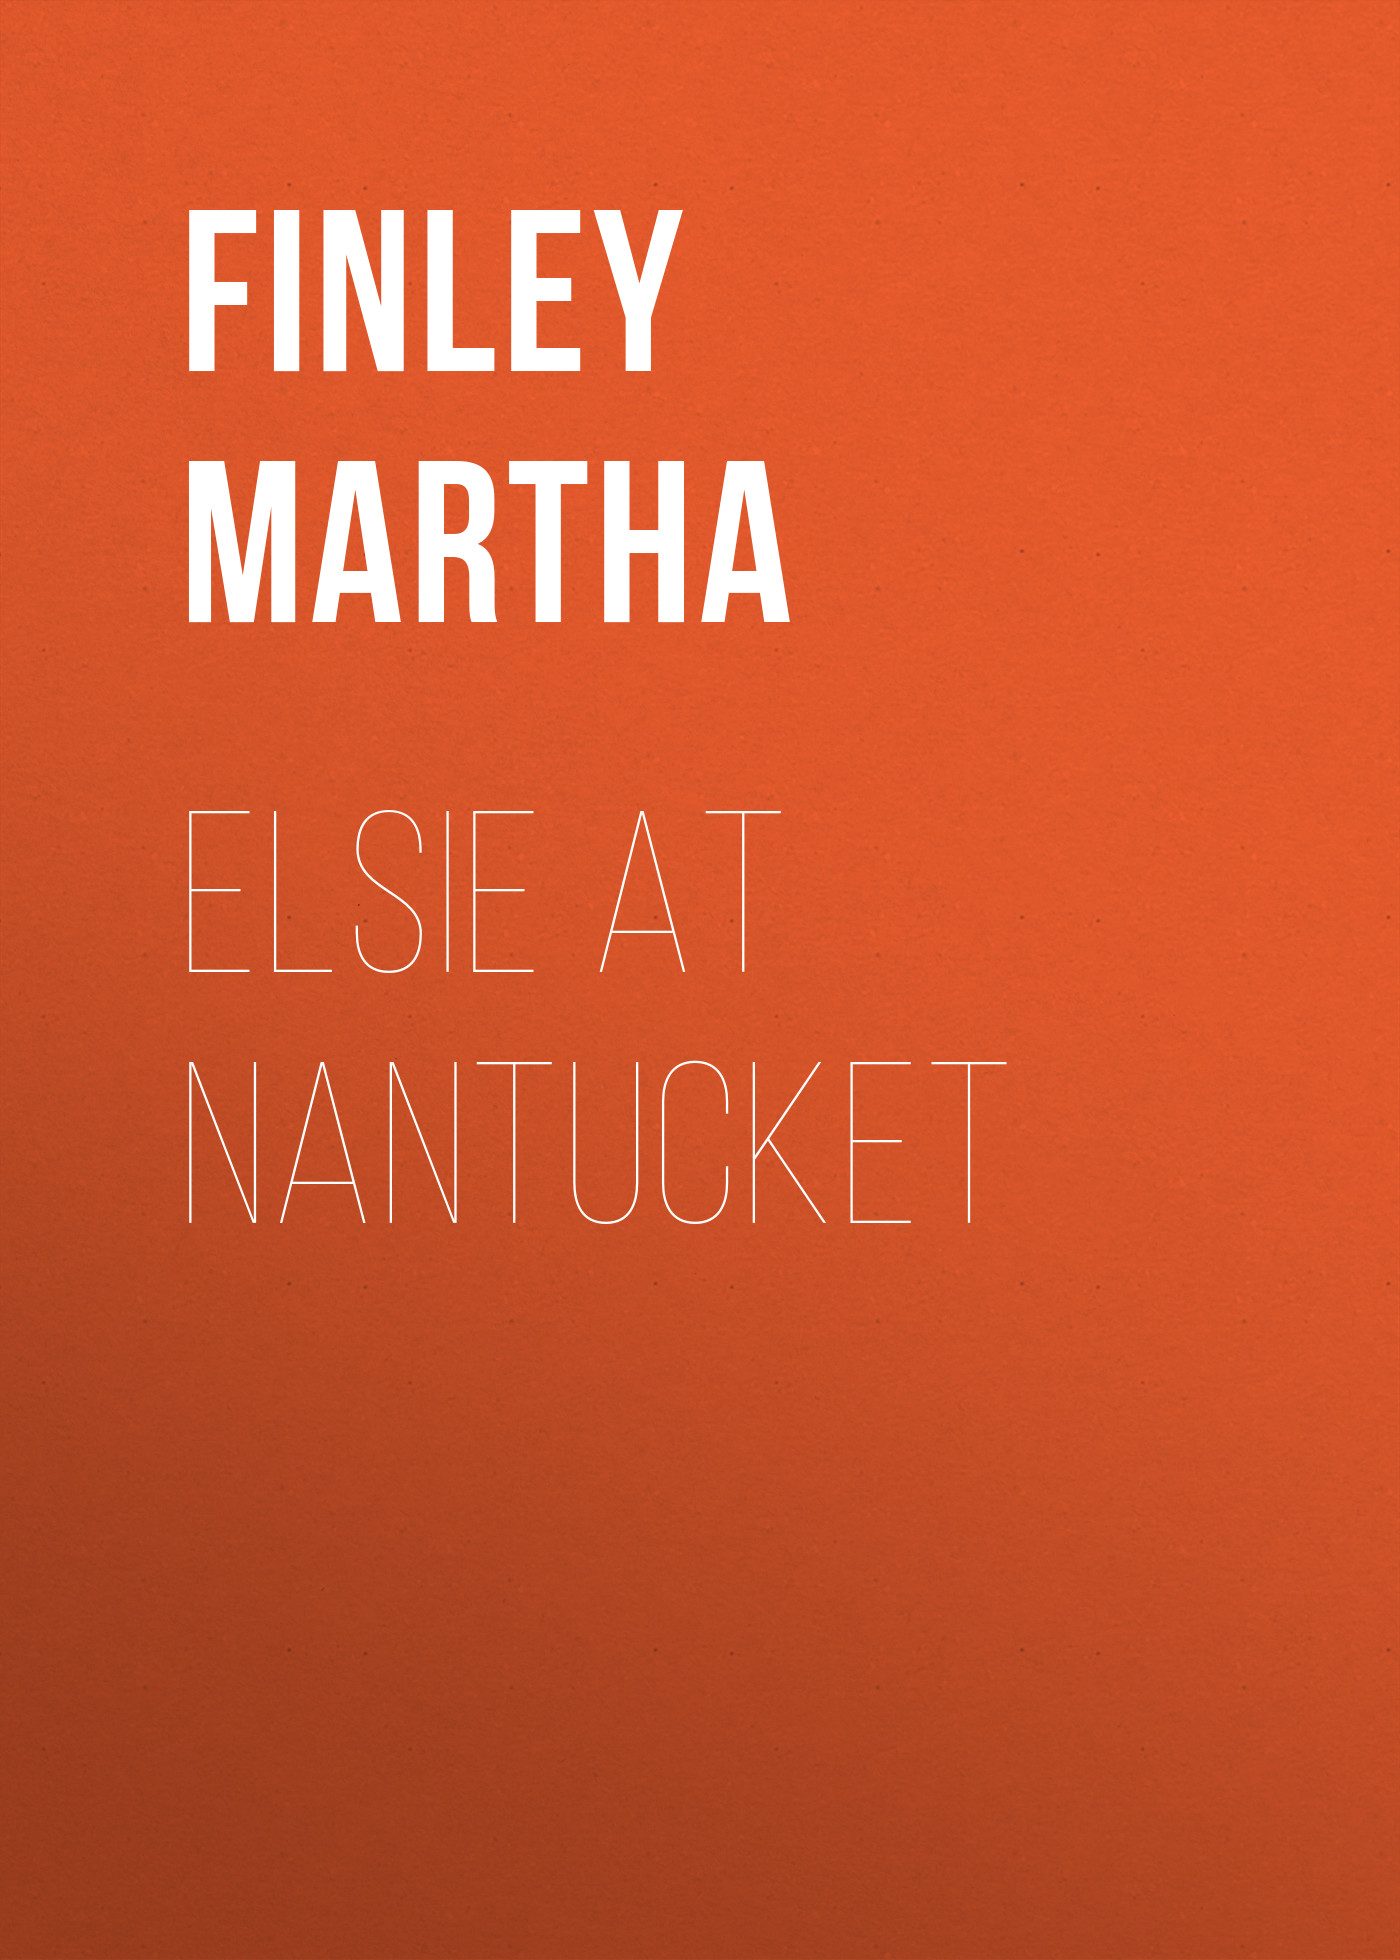 лучшая цена Finley Martha Elsie at Nantucket